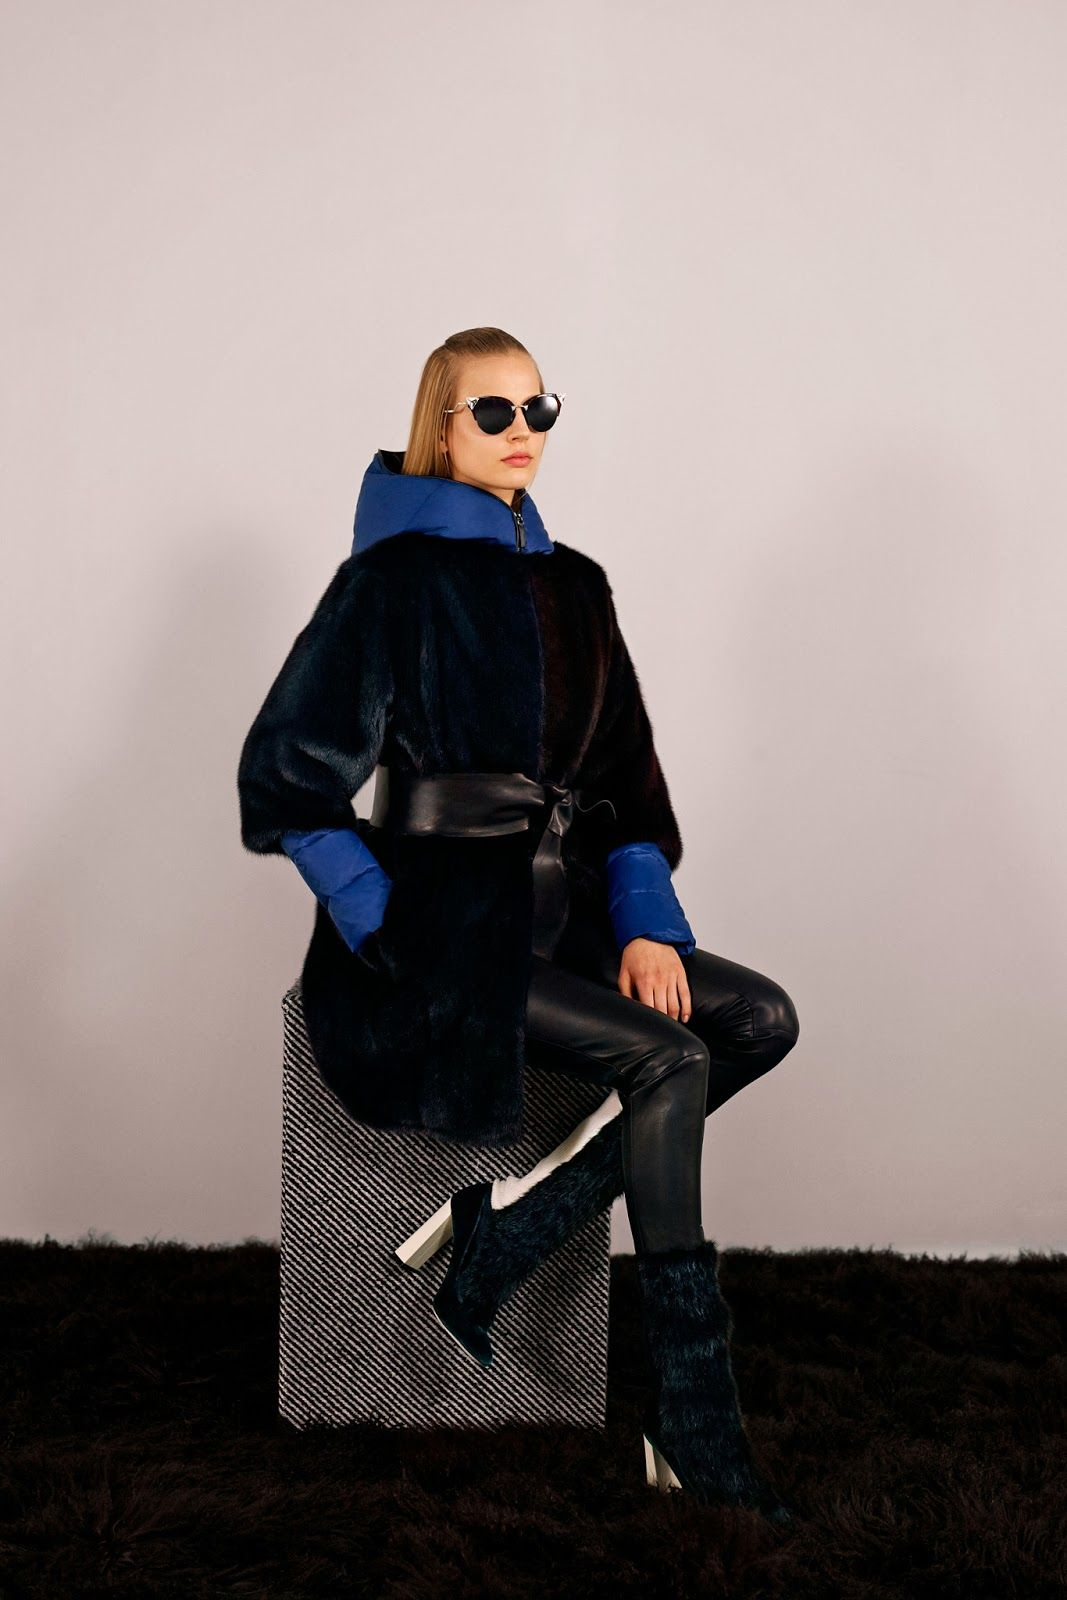 elisabeth erm for fendi pre-fall 2014